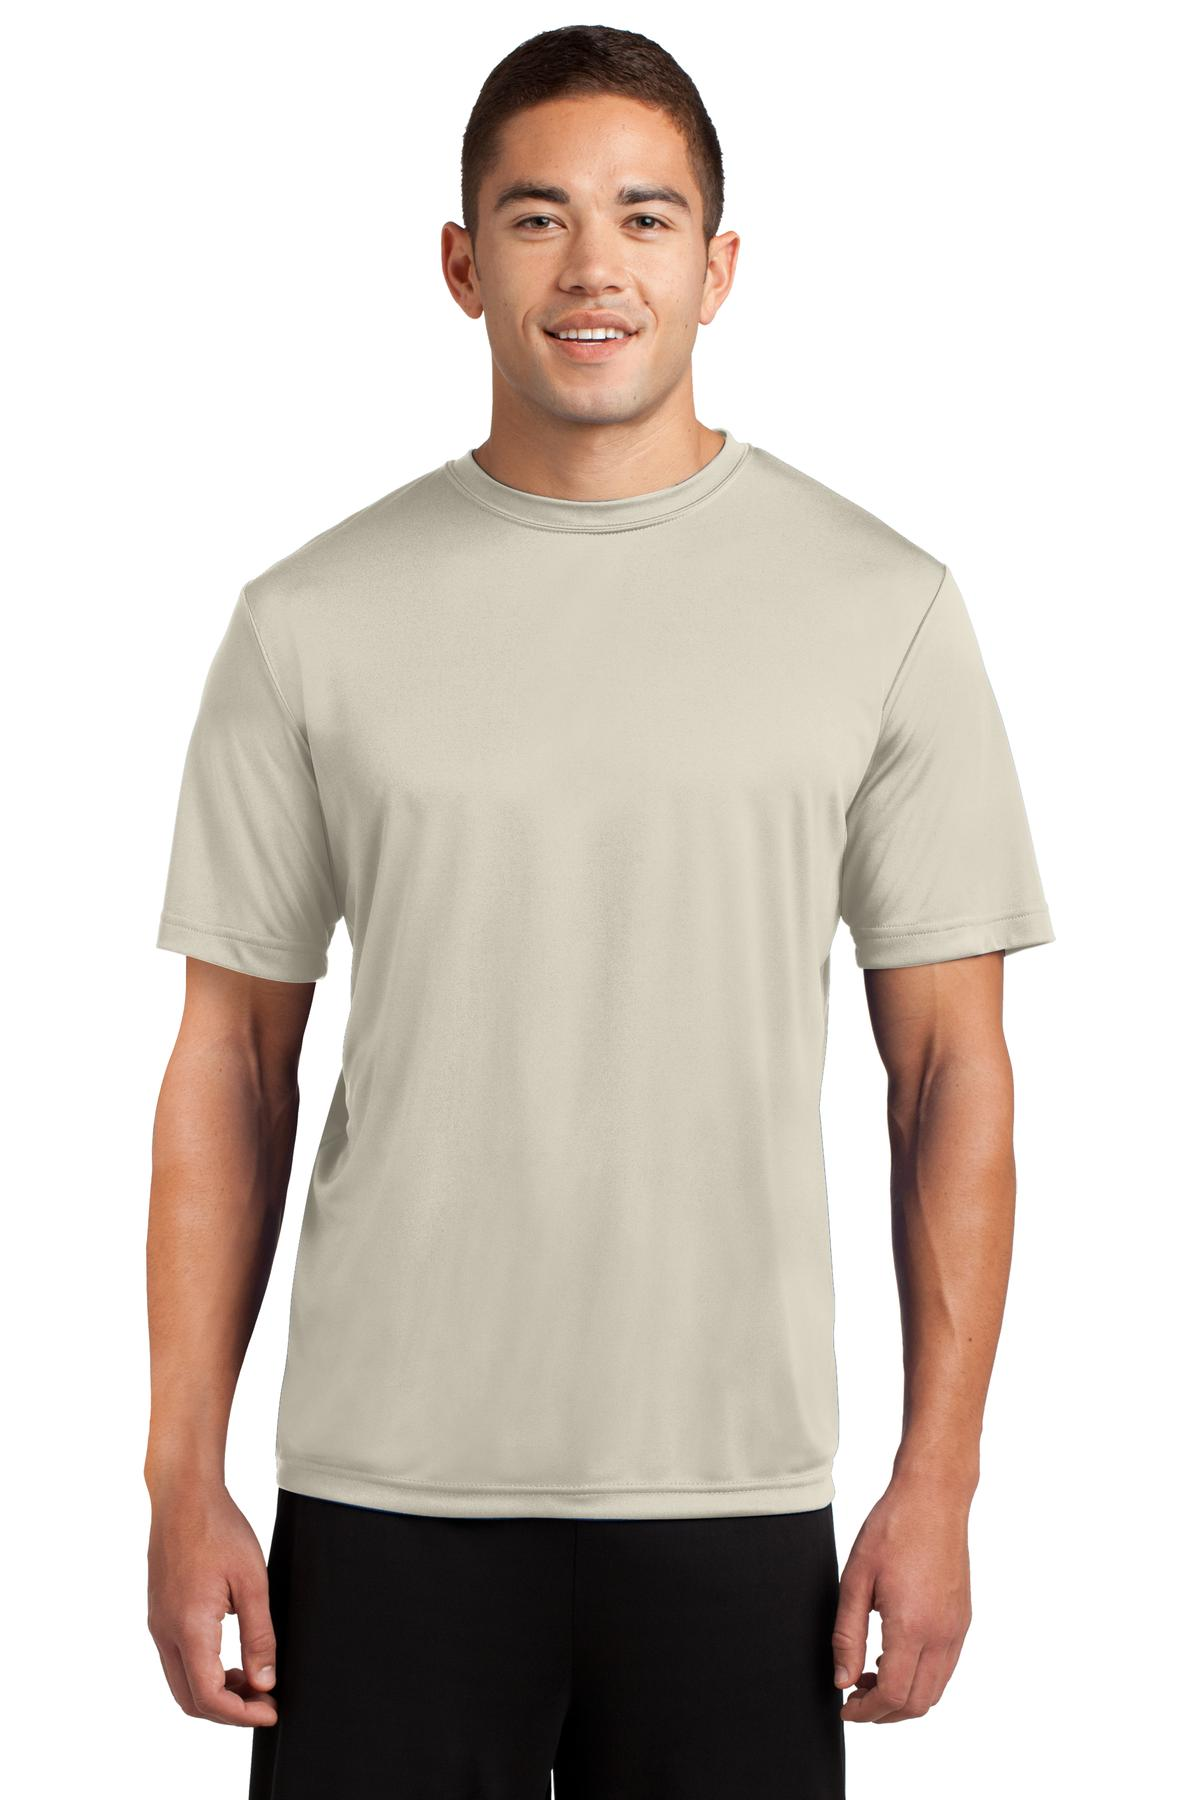 Sport-Tek ®  PosiCharge ®  Competitor™ Tee. ST350 - Sand